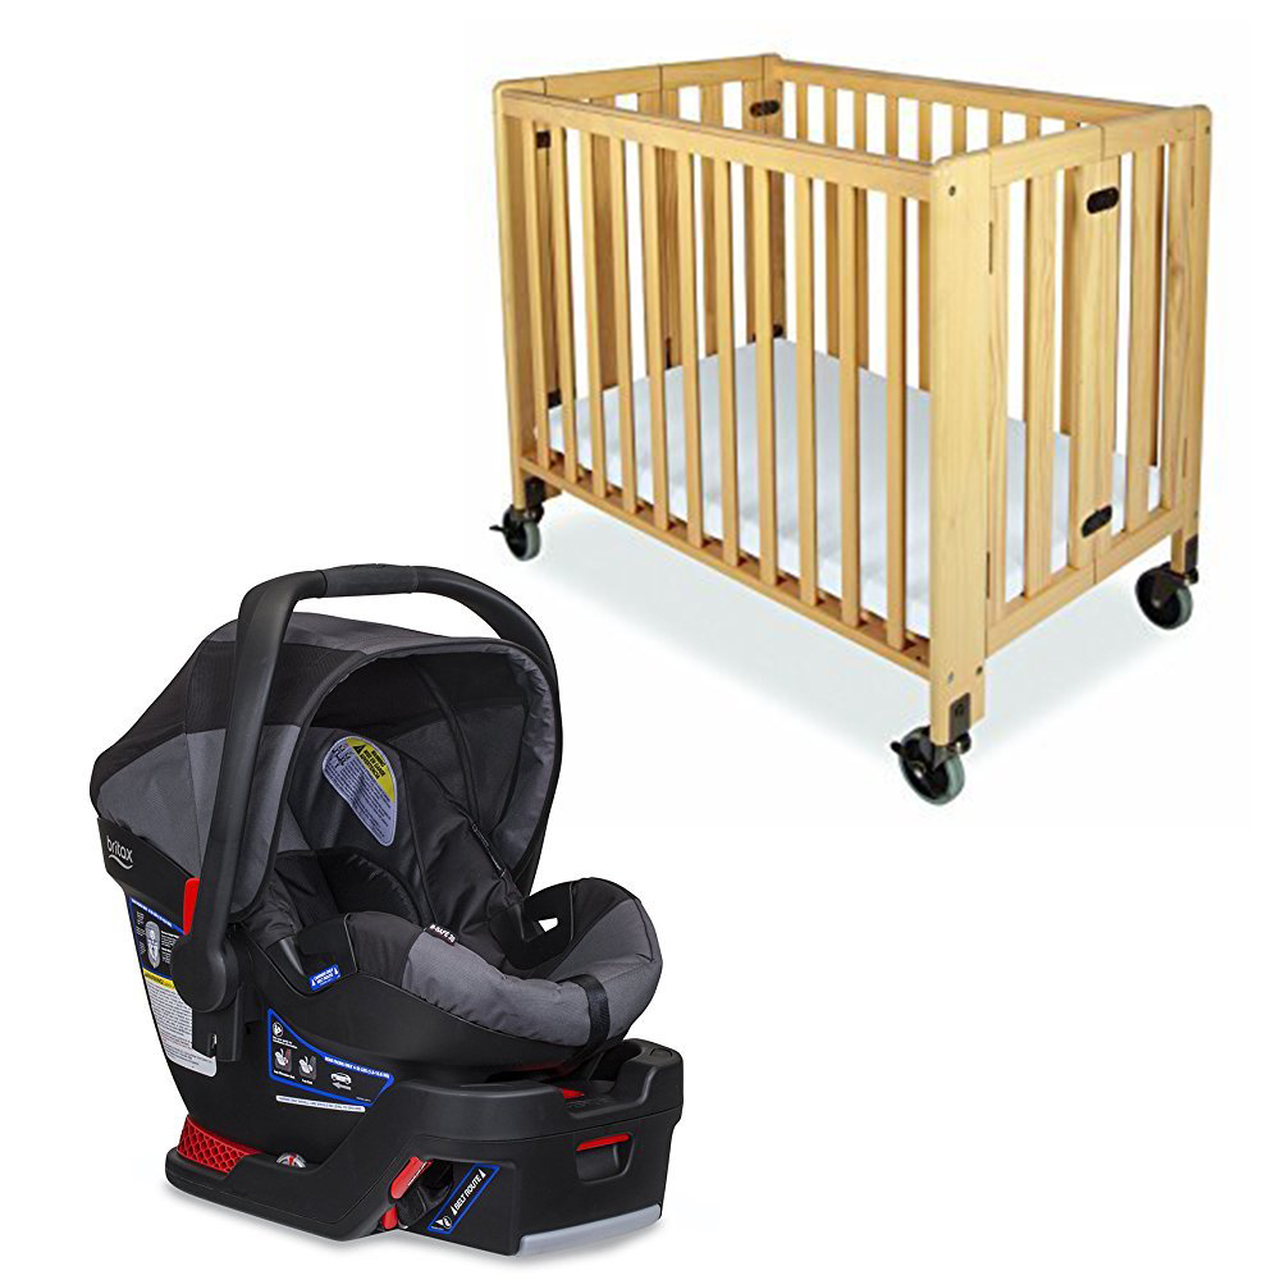 PACKAGE 2 (COMPACT CRIB)